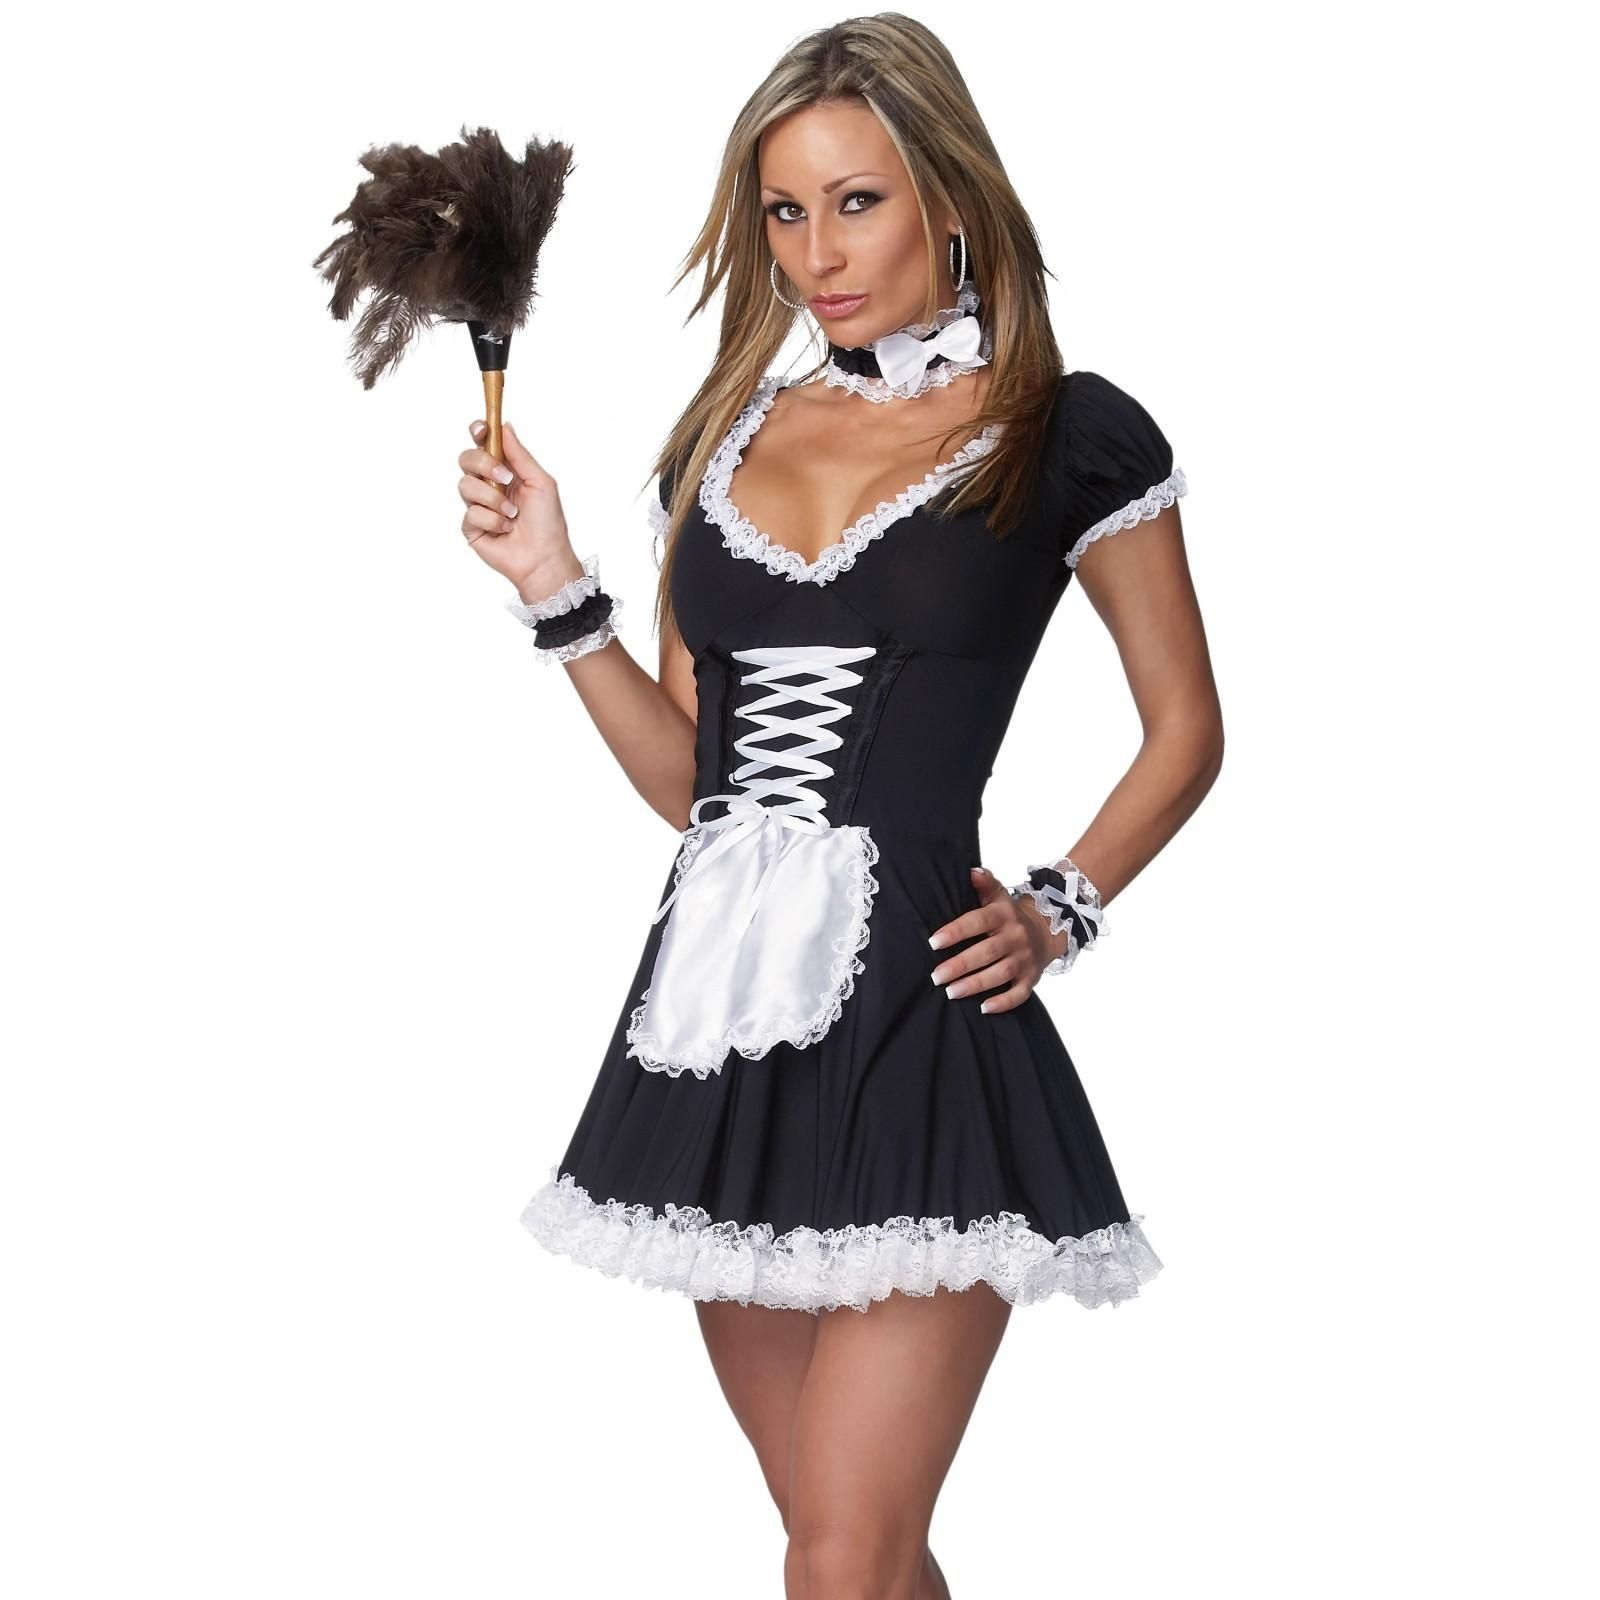 Chamber Maid Sexy Adult Costume Chamber Maid